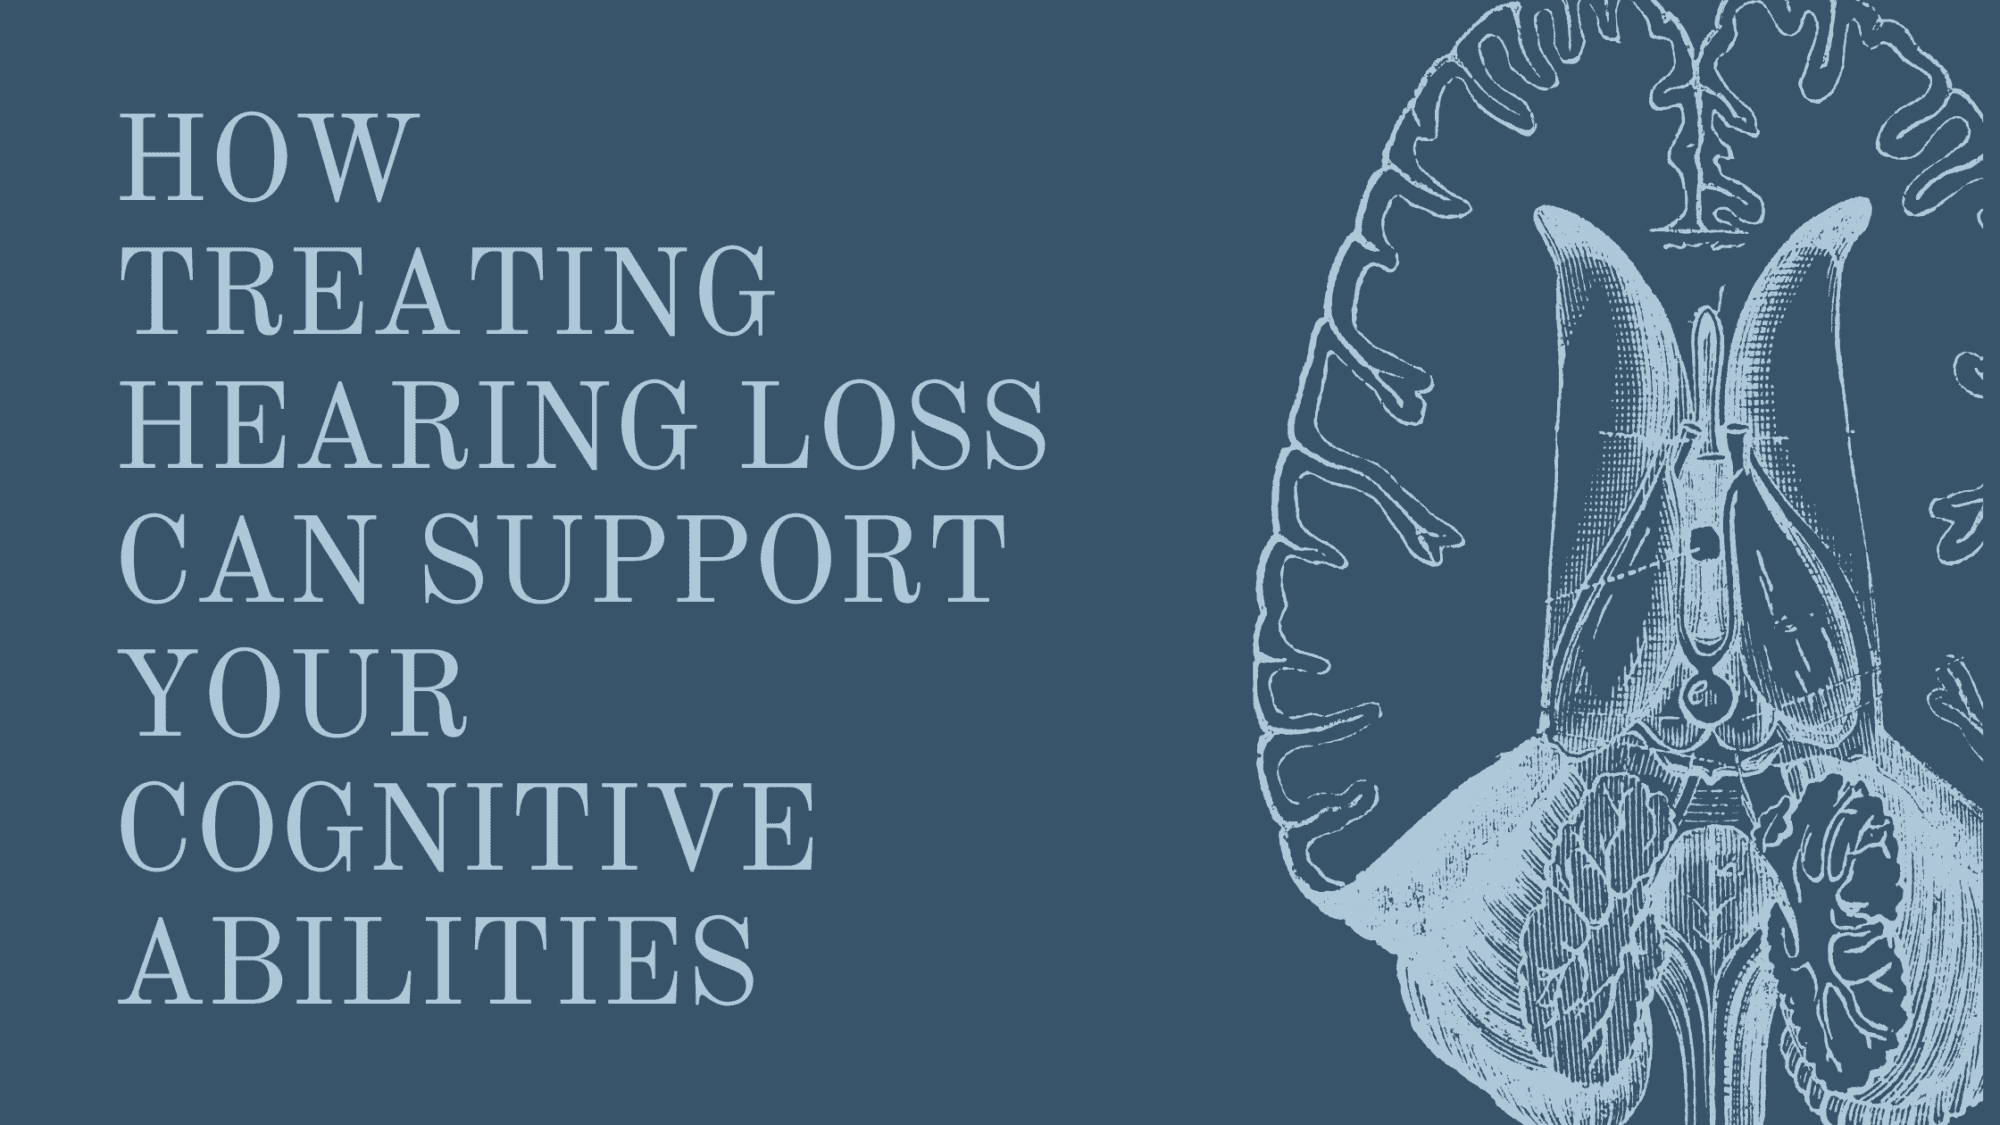 How Treating Hearing Loss Can Support Your Cognitive Abilities